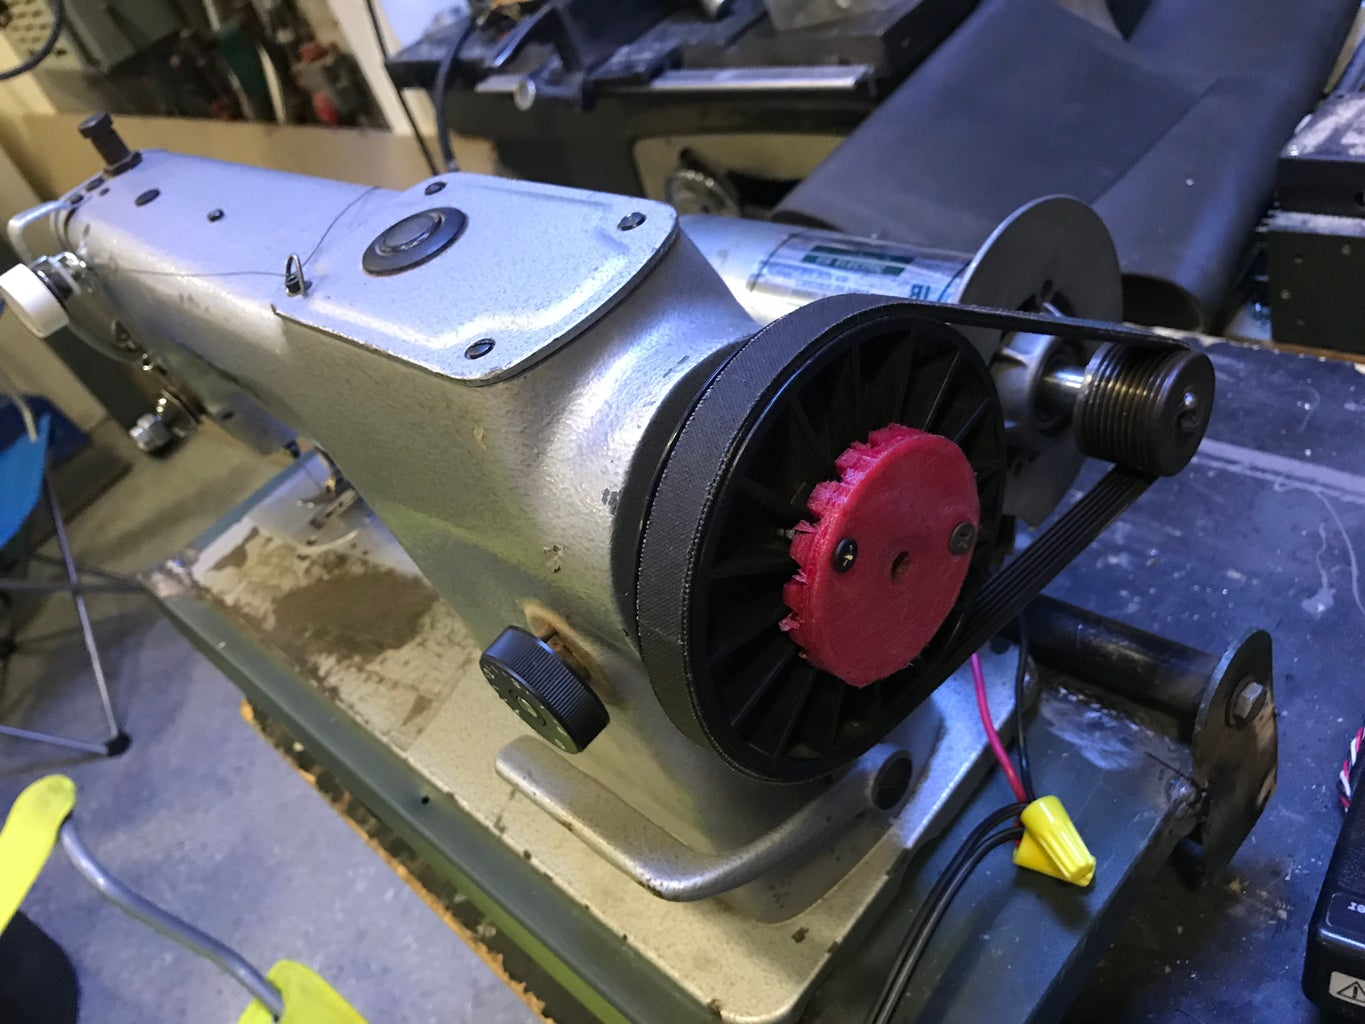 Industrial Sewing Machine Powered by Treadmill Motor